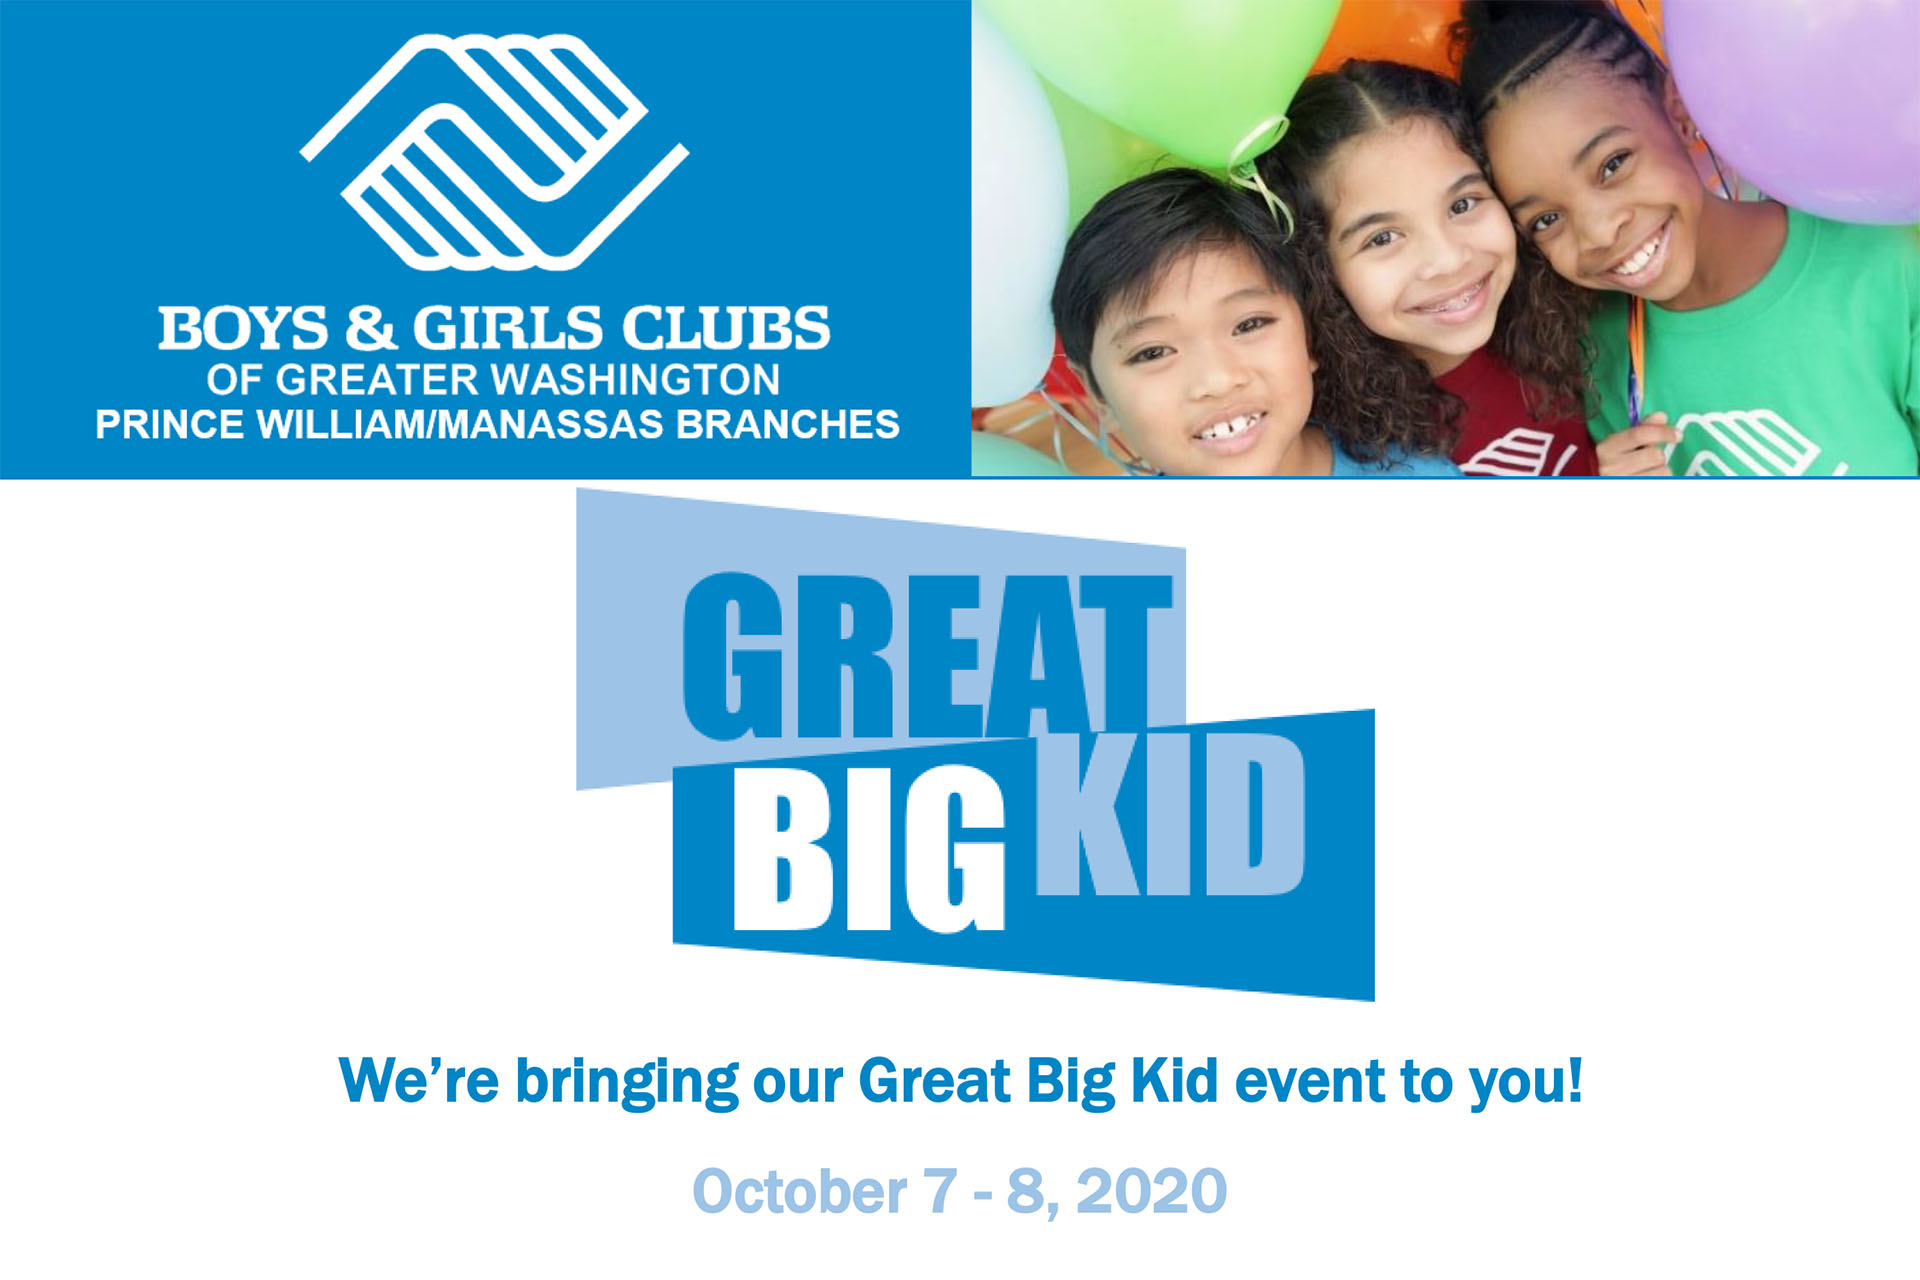 Great Big Kid Event to be held by Boys & Girls Club